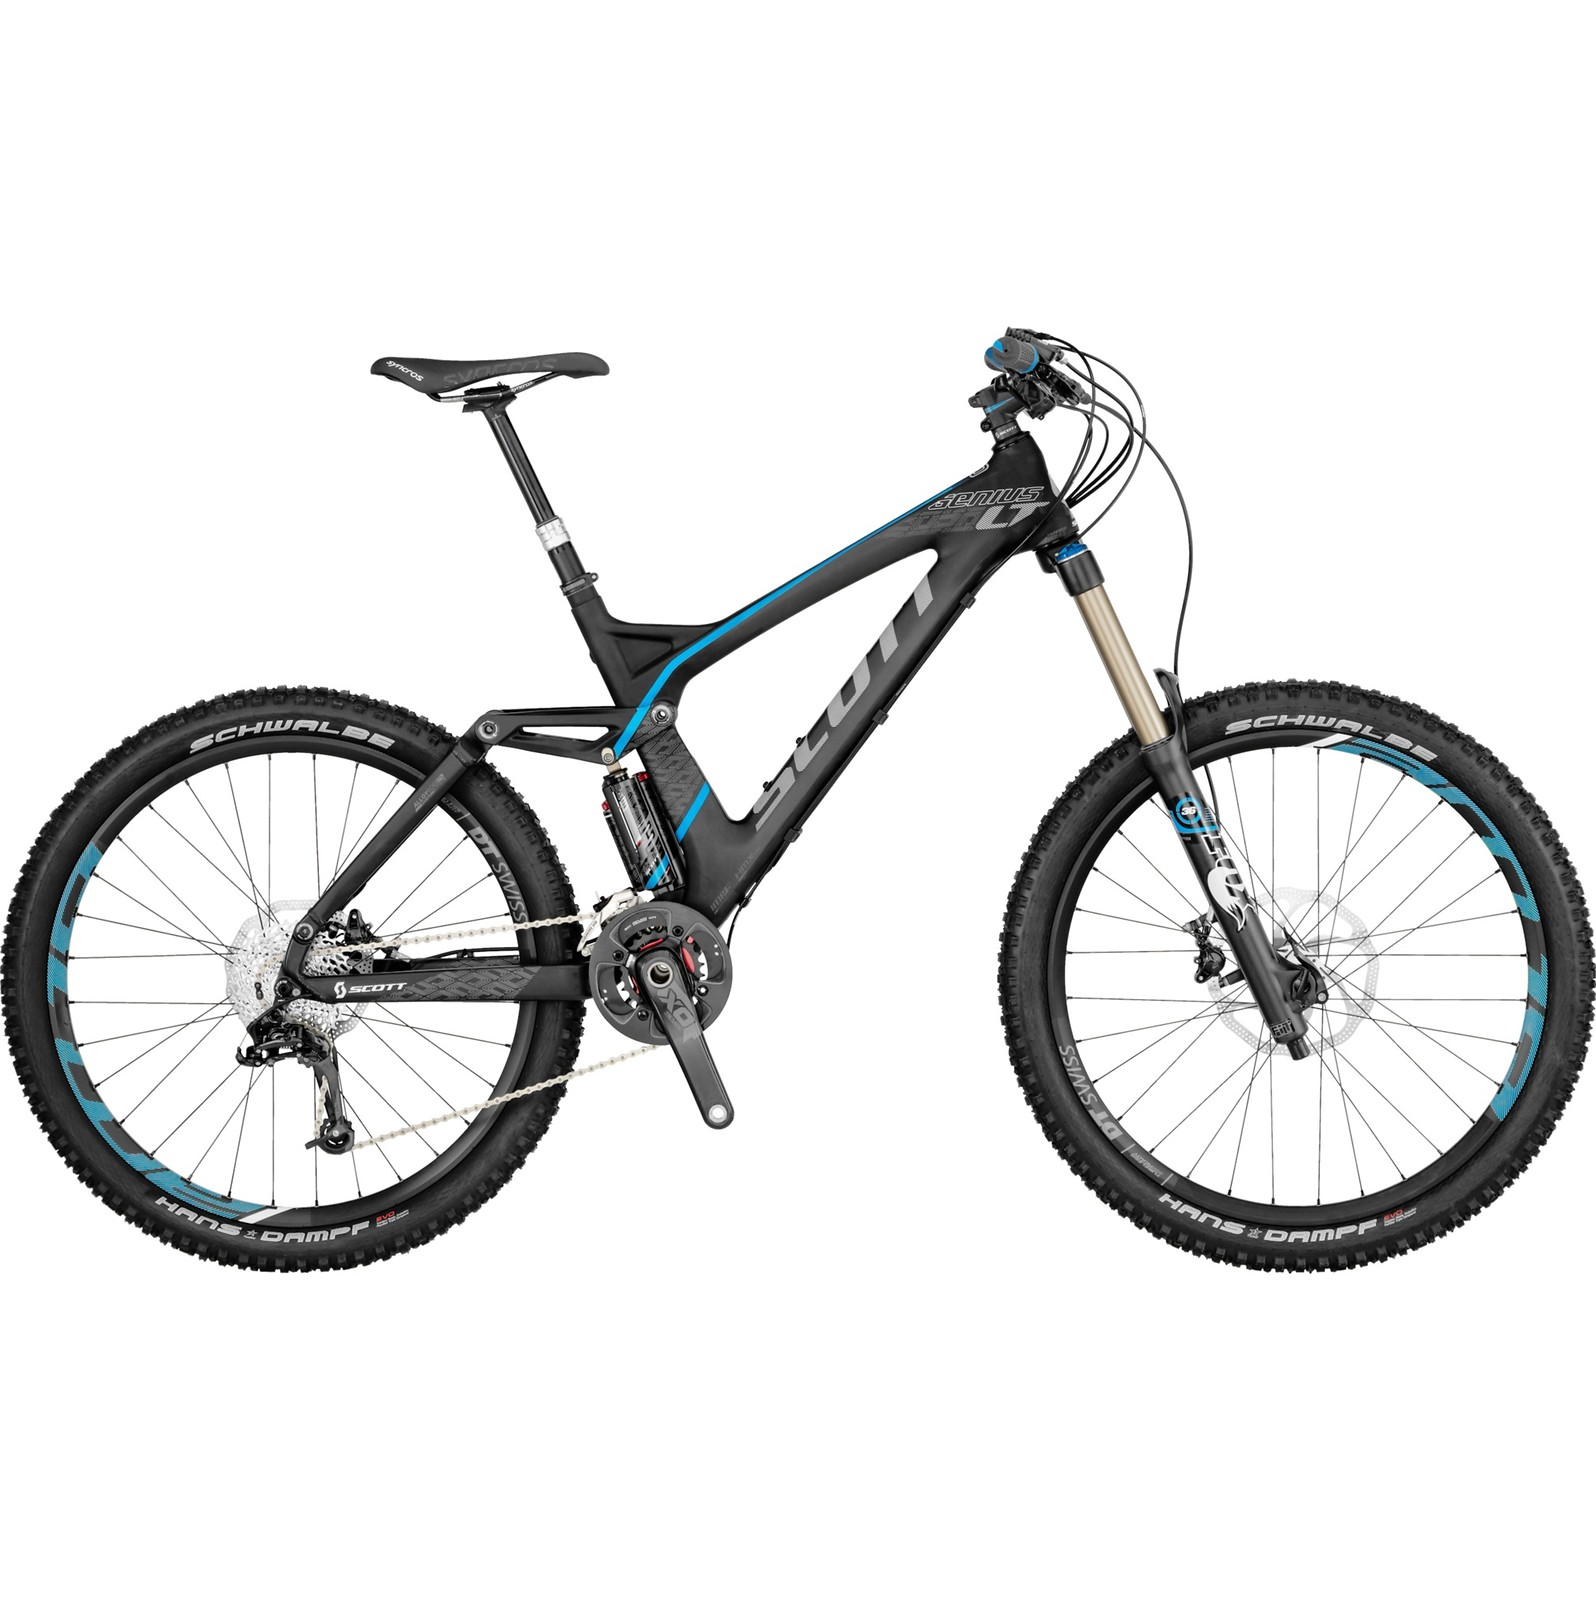 2012 Scott Genius LT 10 Bike 221734